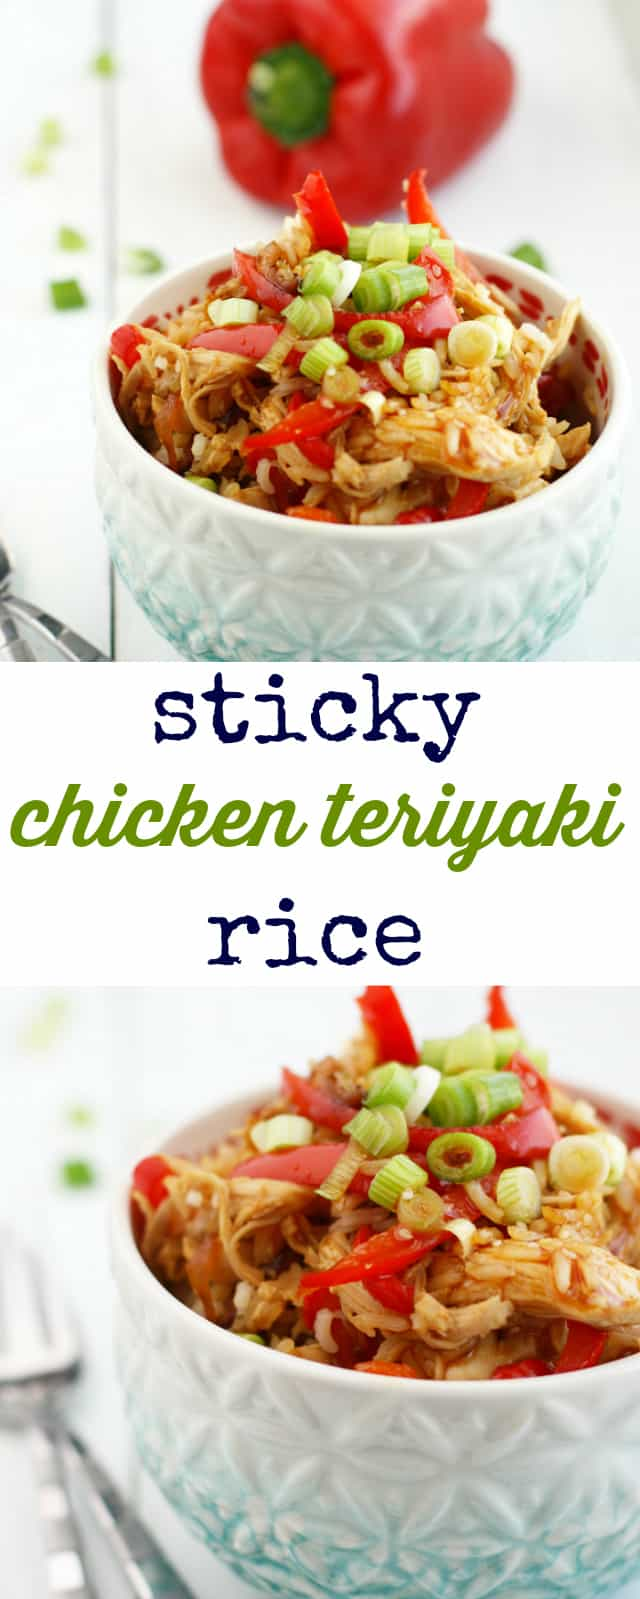 Rice and chicken soaked with a delicious, sticky sweet teriyaki sauce. So good - the whole family will love it! #chicken #teriyaki #sponsored